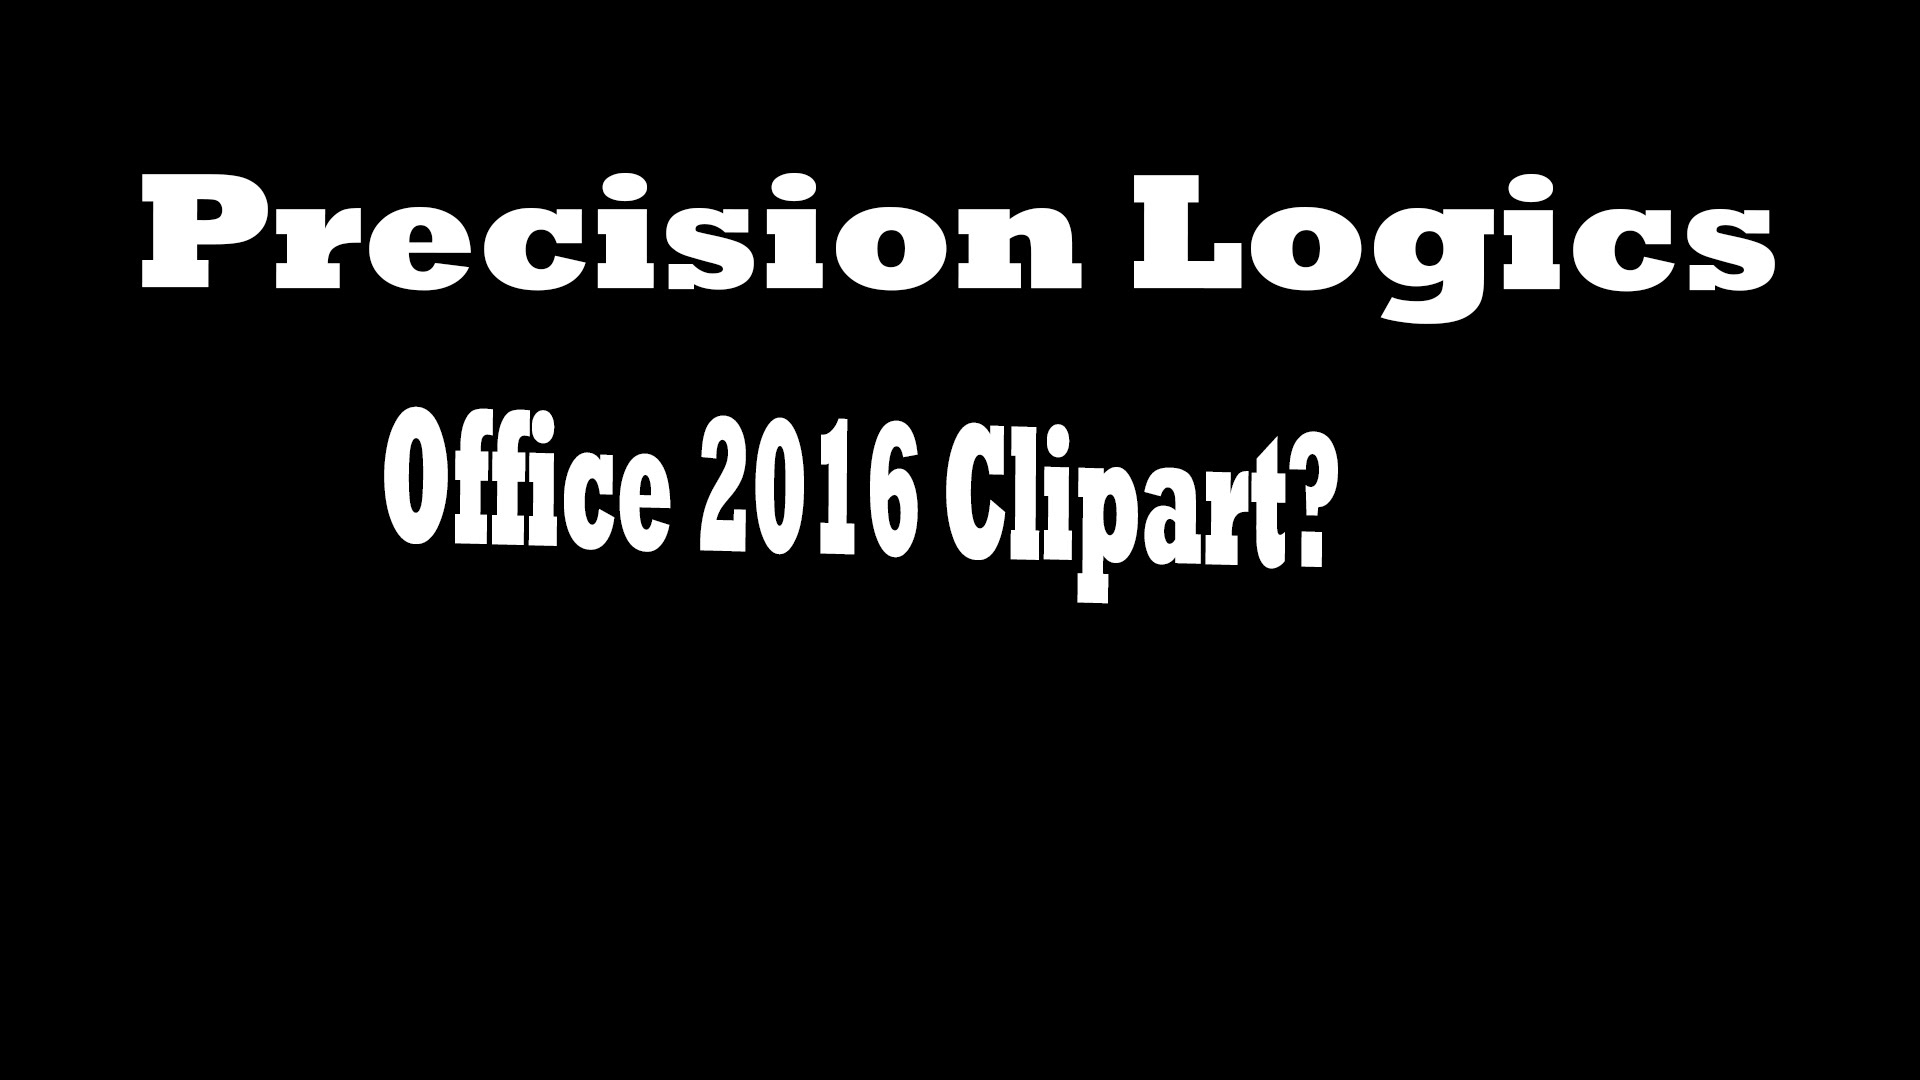 2016 clipart. Office where did it